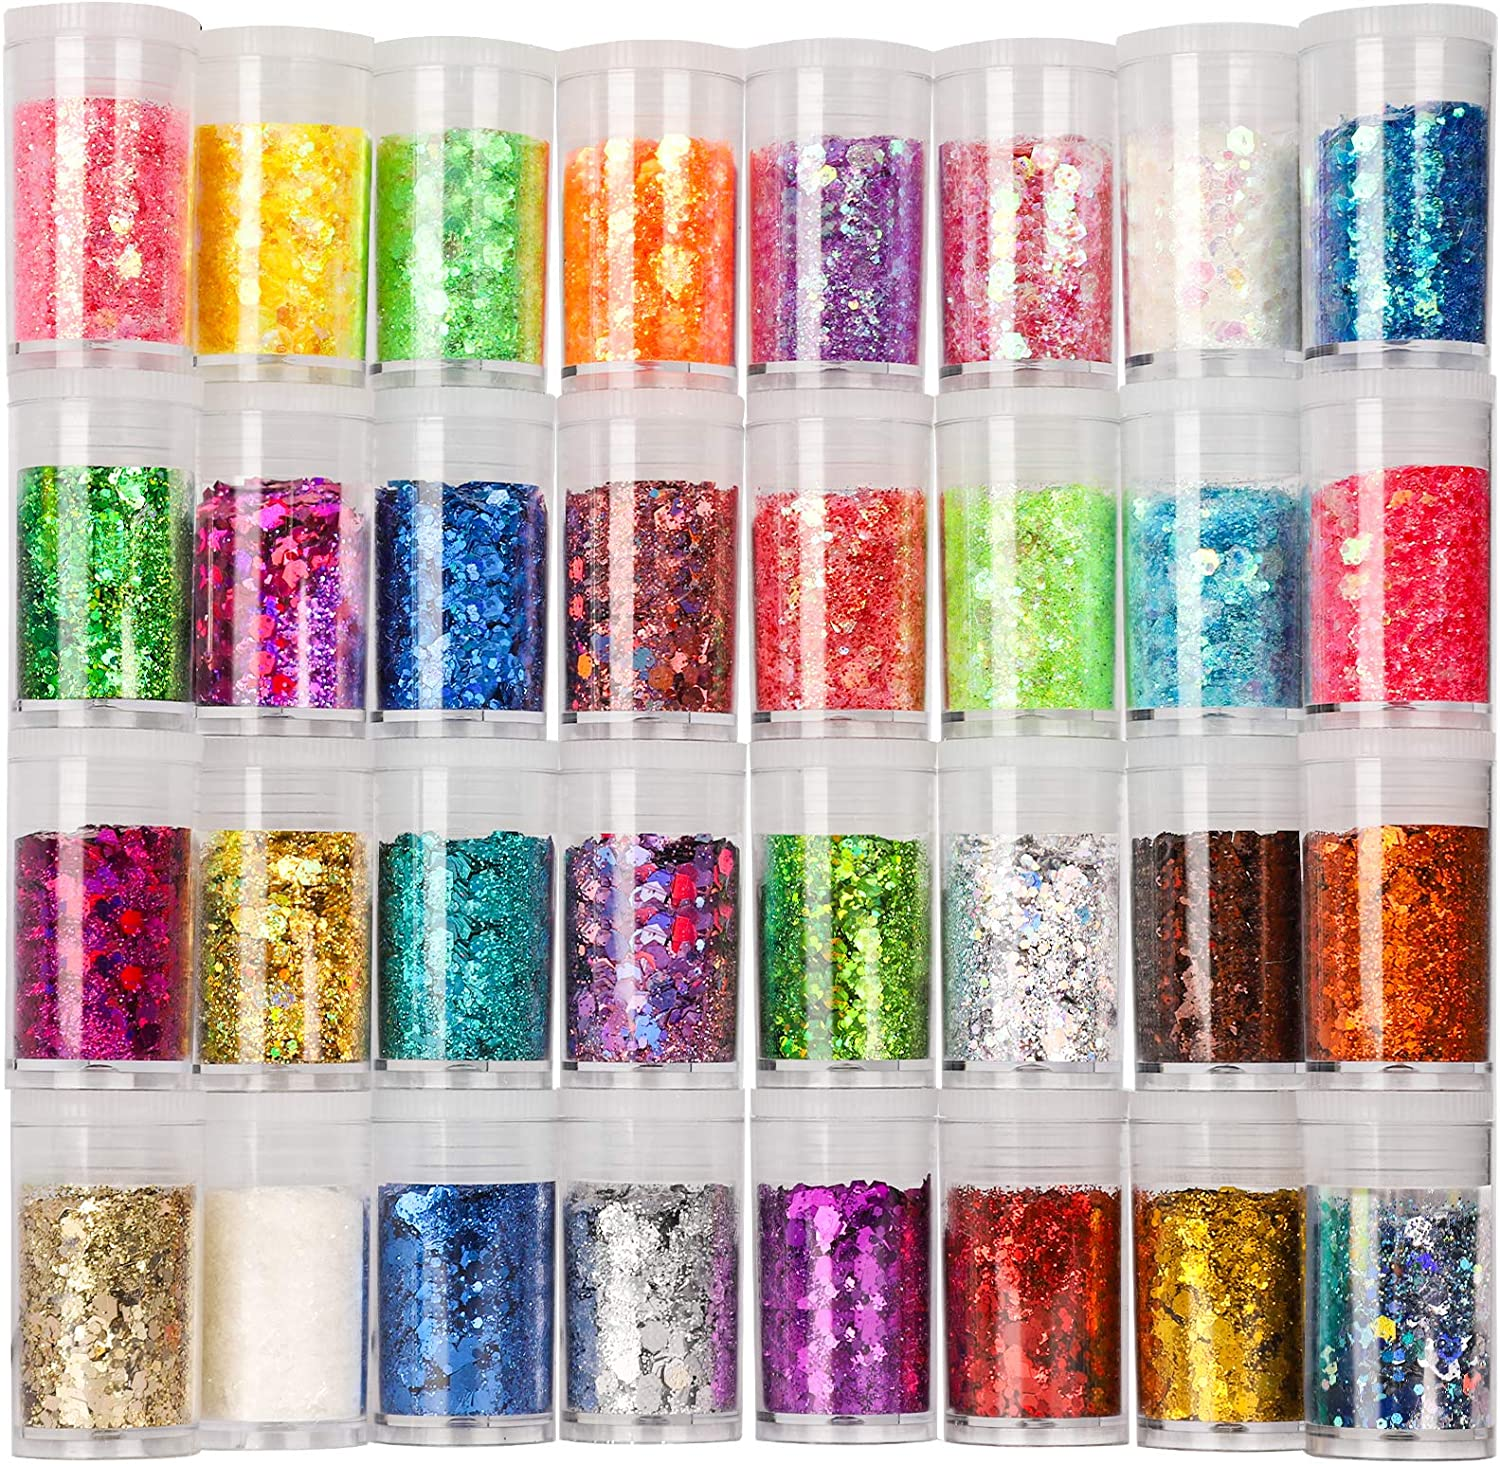 Festival Chunky and Fine Glitter Mix, Teenitor 32 Colors Chunky Sequins & Fine Glitter Powder Mix, Iridescent Glitter Flakes, Cosmetic Face Body Eye Hair Nail Art Resin Tumbler Glitter Loose Glitter : Beauty & Personal Care